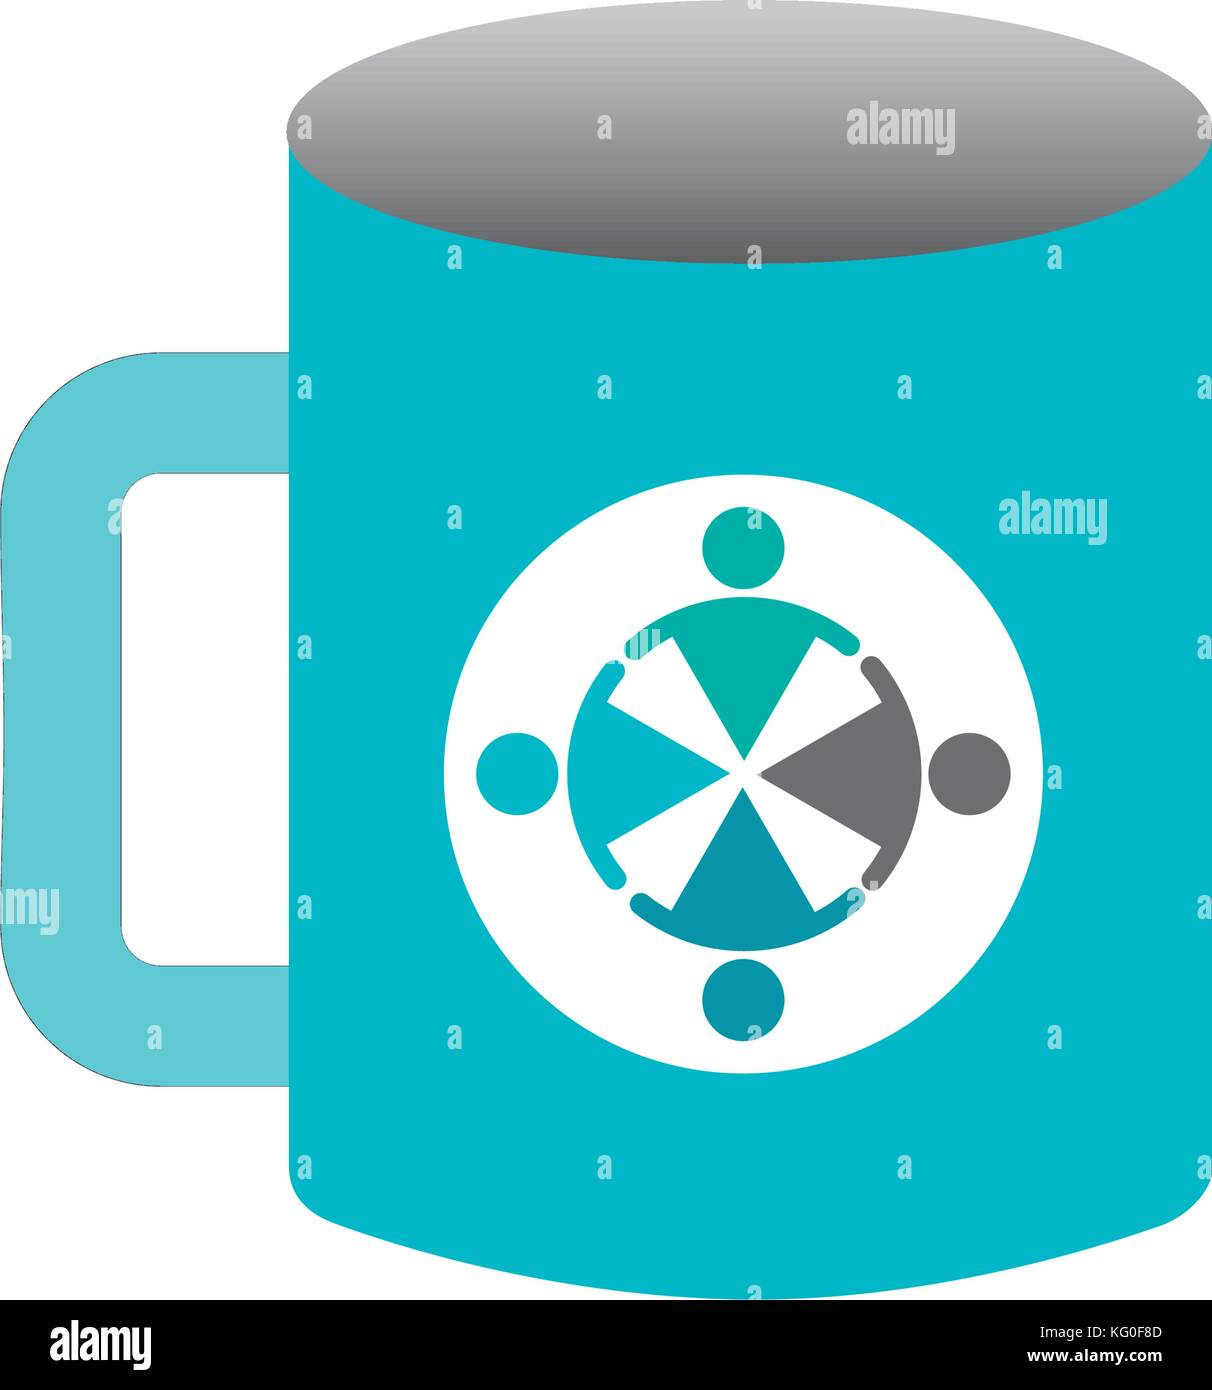 Mockup Of Corporate Ceramic Mug Template For Branding Identity And Stock Vector Image Art Alamy